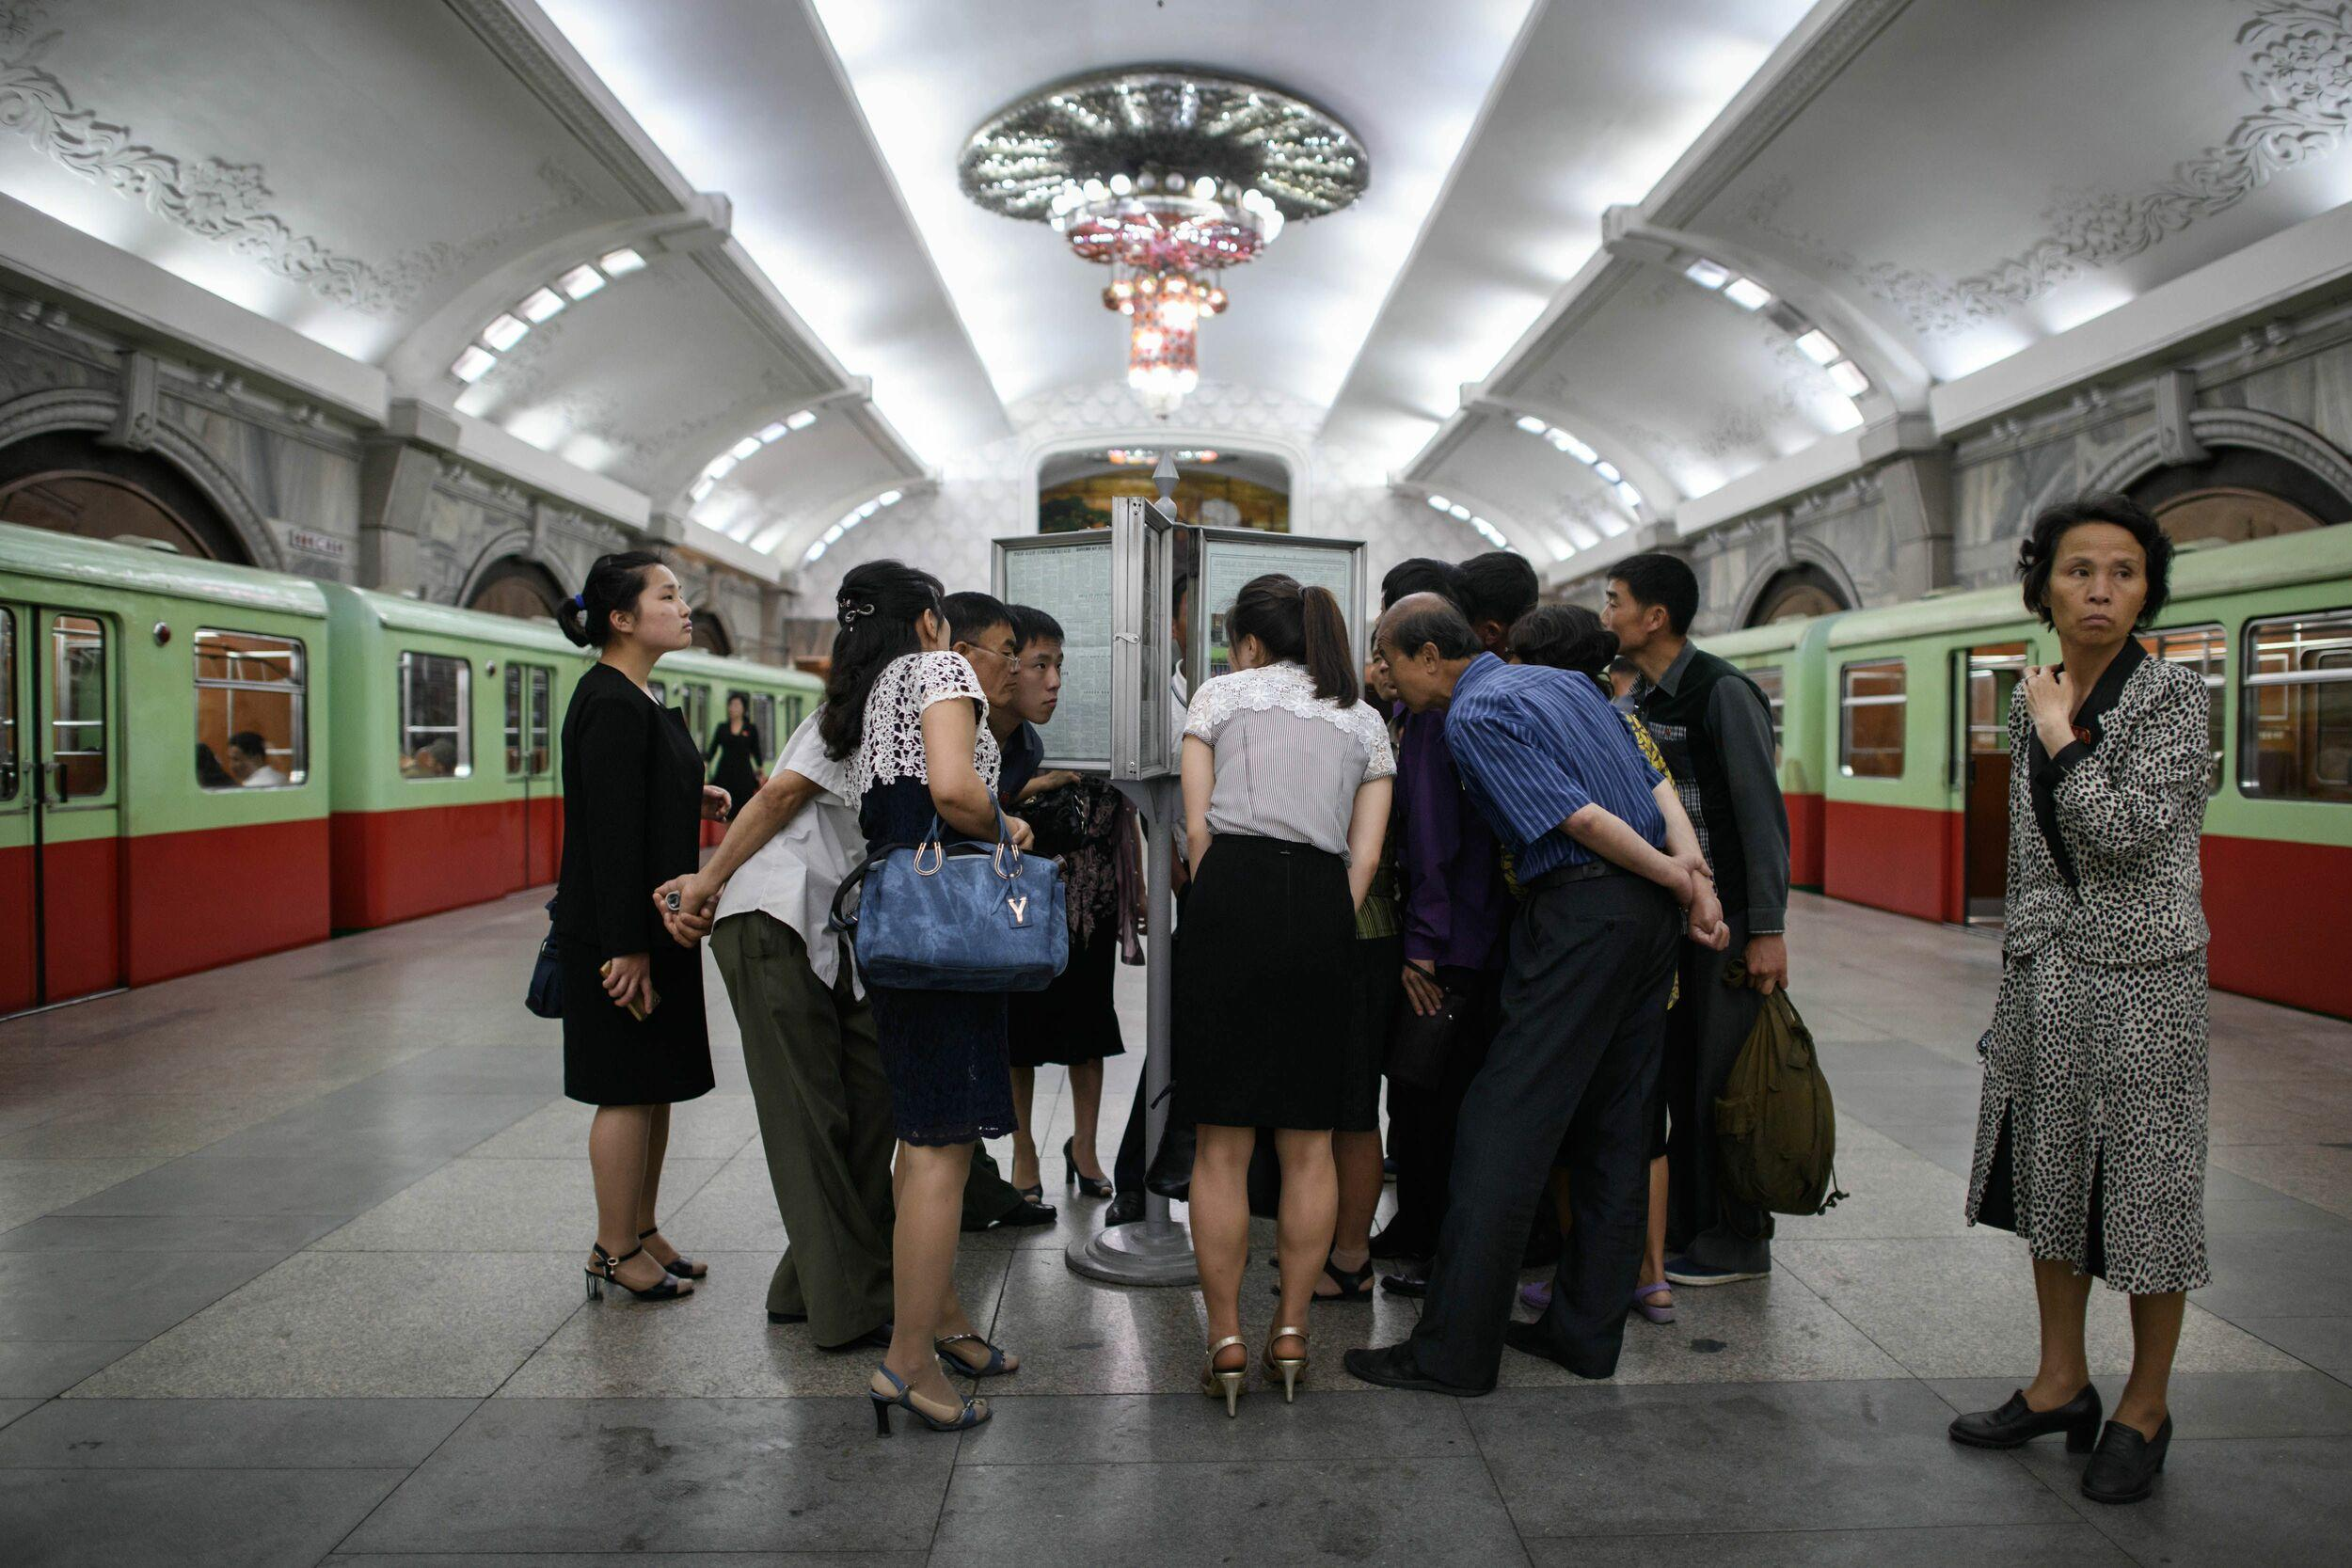 TOPSHOT - Commuters read the latest edition of the Rodong Sinmun newspaper showing images of North Korean leader Kim Jong Un meeting with US president Donald Trump during their summit in Singapore, at a news stand on a subway platform of the Pyongyang metro on June 13, 2018. - Donald Trump accepted an invitation from Kim Jong Un to visit North Korea during their historic summit, Pyongyang state media reported on June 13, as the US president said the world had jumped back from the brink of 'nuclear catastrophe'. (Photo by Ed JONES / AFP)        (Photo credit should read ED JONES/AFP/Getty Images)